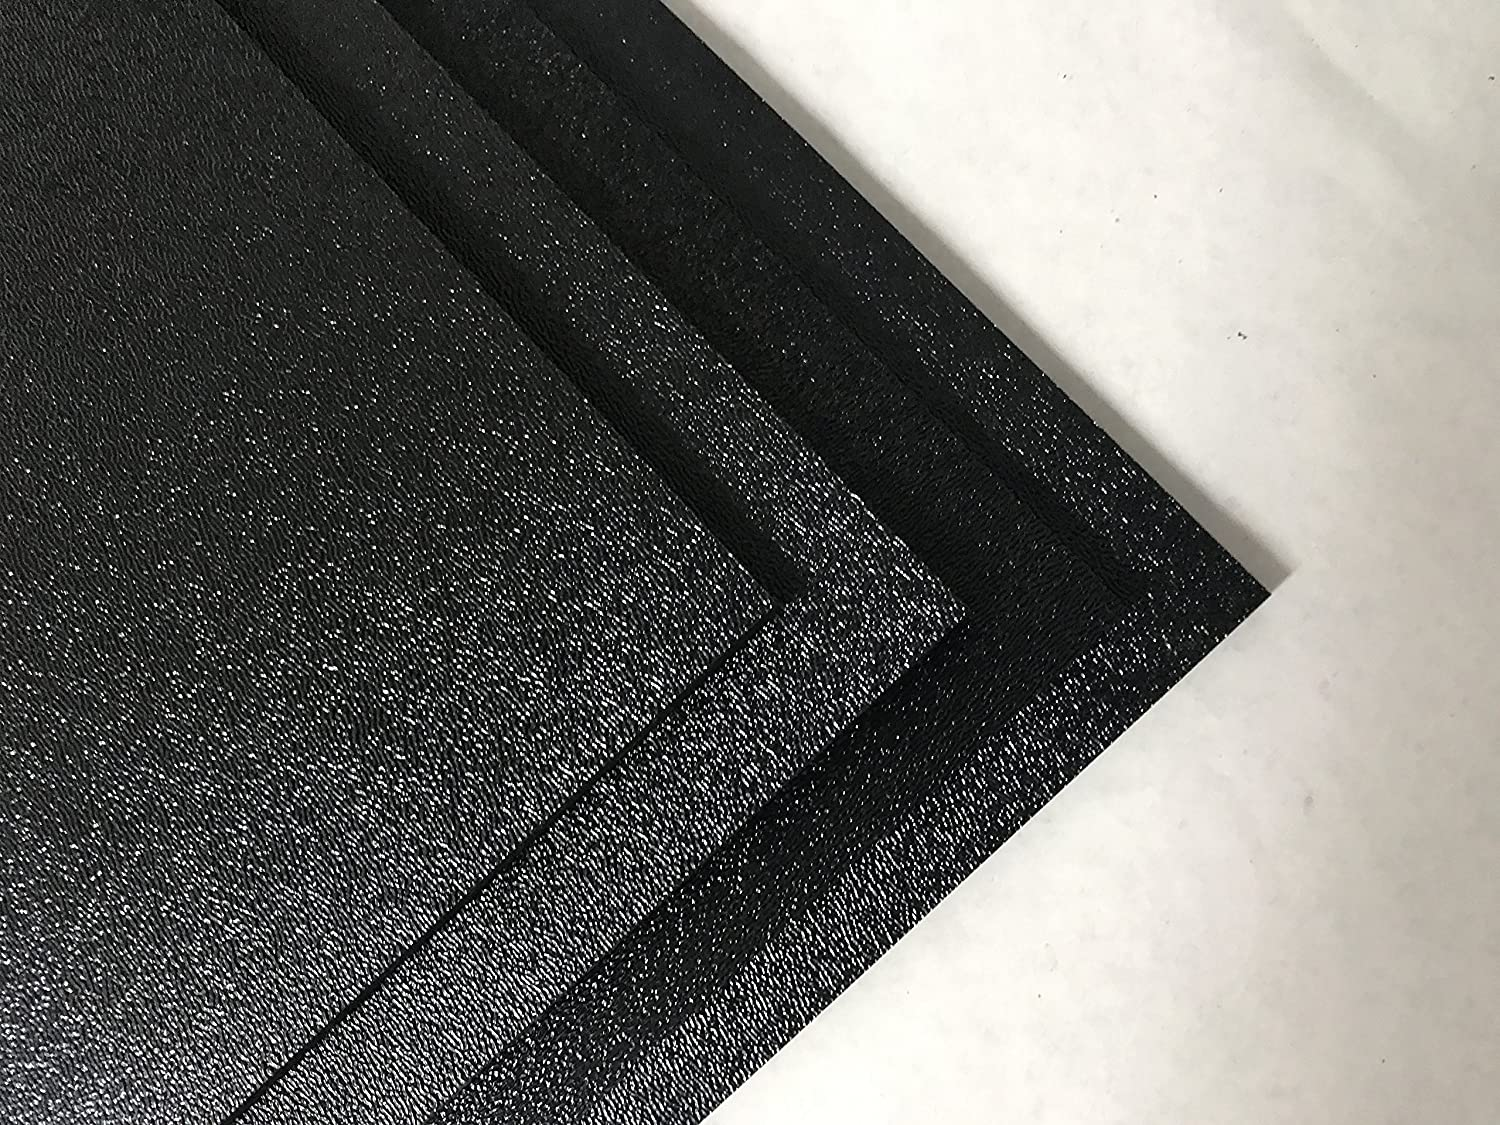 """ABS Black Plastic Sheet 1/8"""" x 24"""" x 24"""" Textured 1 Side Vacuum Forming ( Pack of 4 )"""